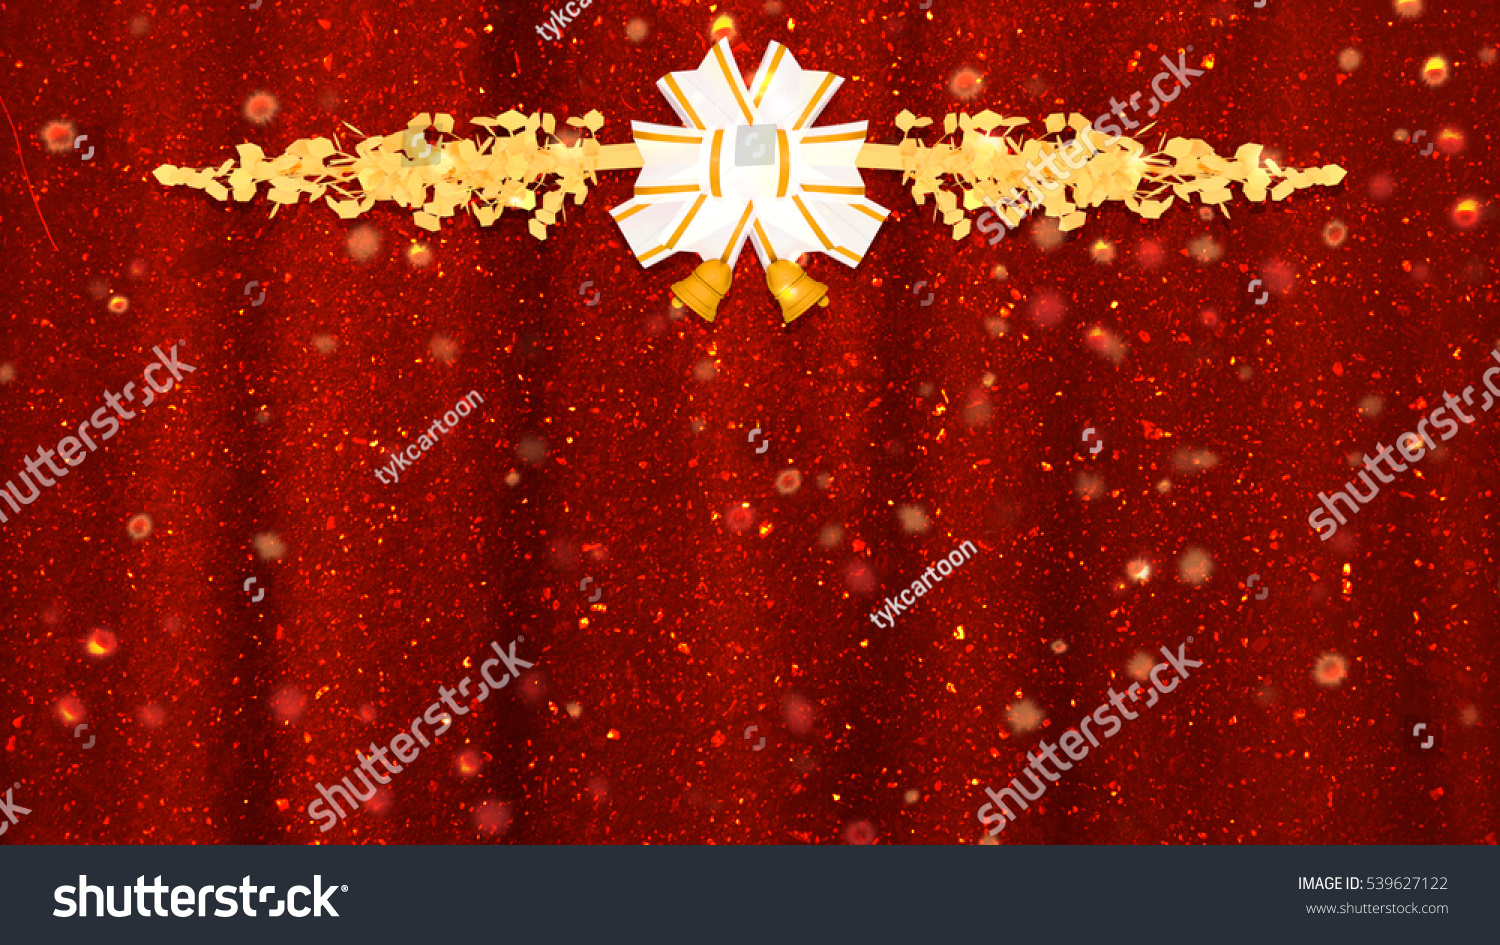 50 Beautiful Merry Christmas And Happy New Year Pictures: 3d Rendering Beautiful Golden Glitter Merry Christmas And